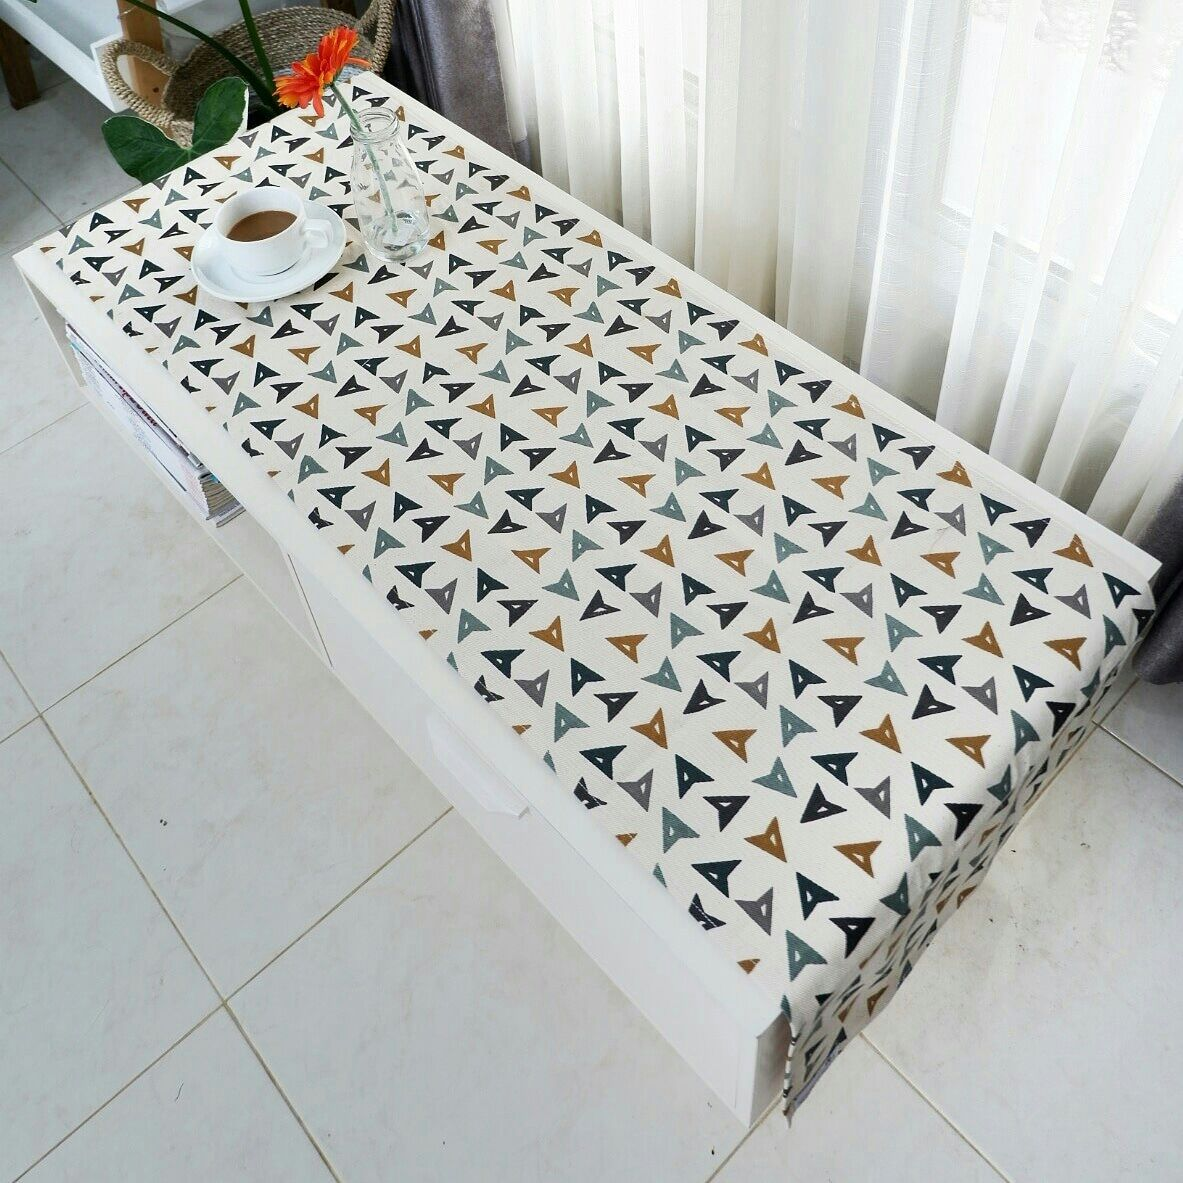 Table runner (Taplak meja) - Boomerang 23